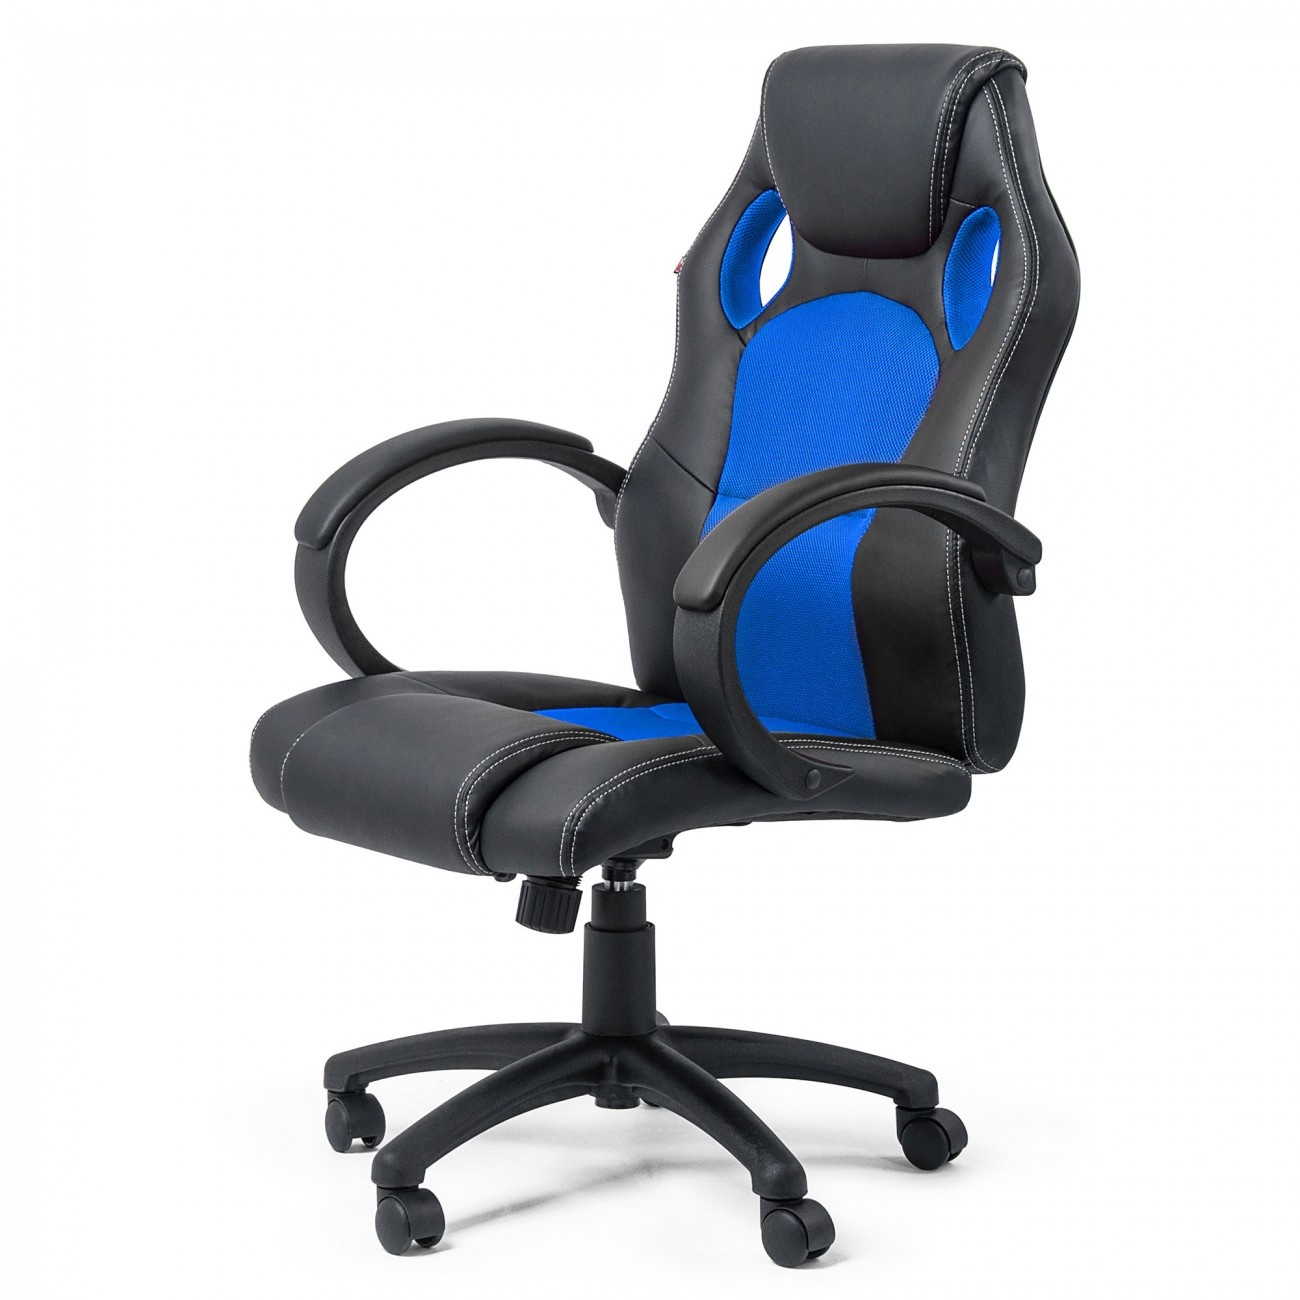 chaise bureau fauteuil si ge racing gamer sportiv ordinateur accoudoir de my sit ebay. Black Bedroom Furniture Sets. Home Design Ideas